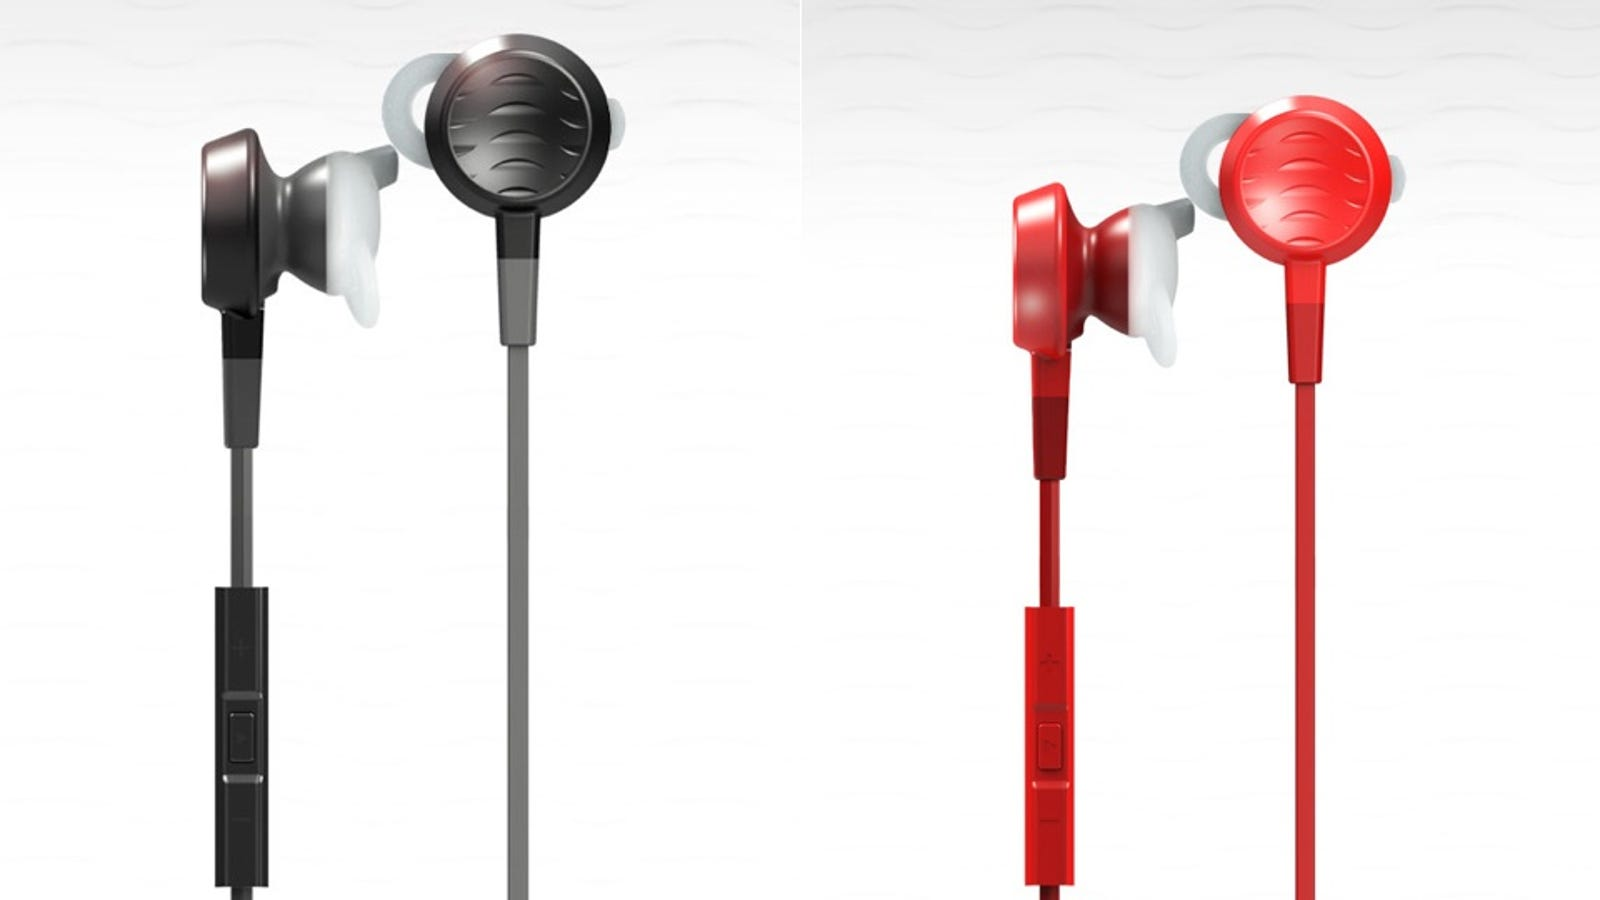 sony wireless headset earphones - Put a Wang in Your Ear Hole